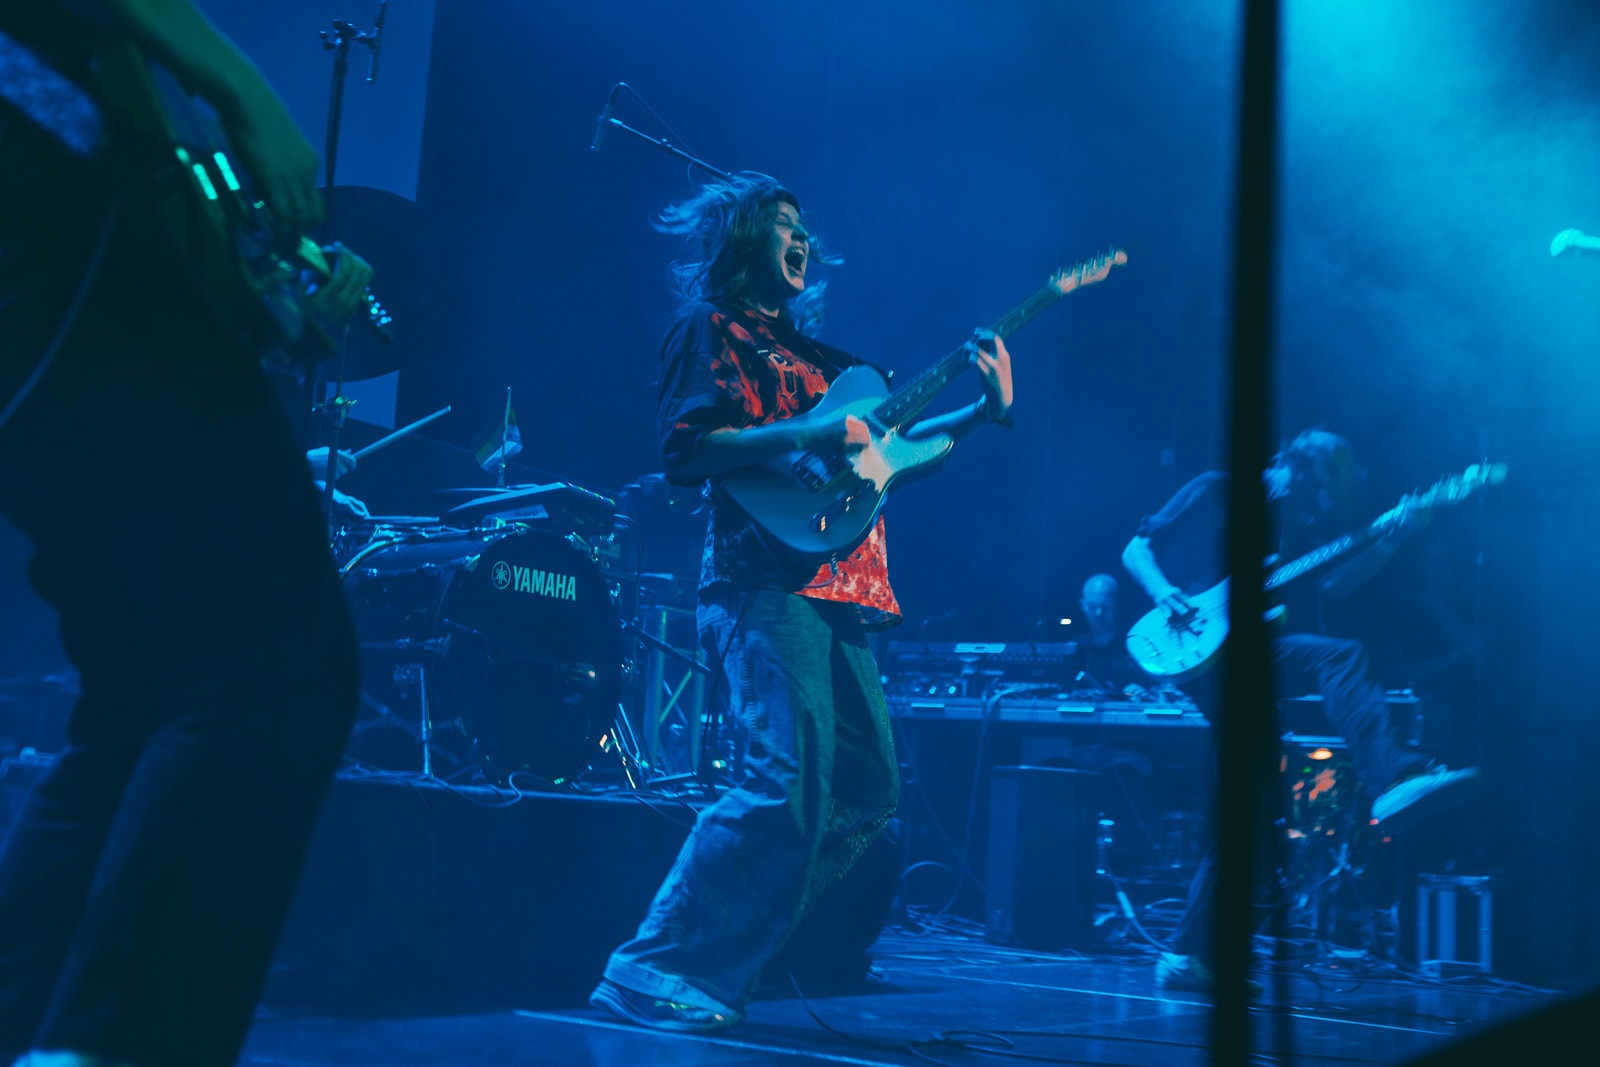 Musician Girl in Red performing with a band at Iceland Airwaves 2019, holding a guitar and looking excited